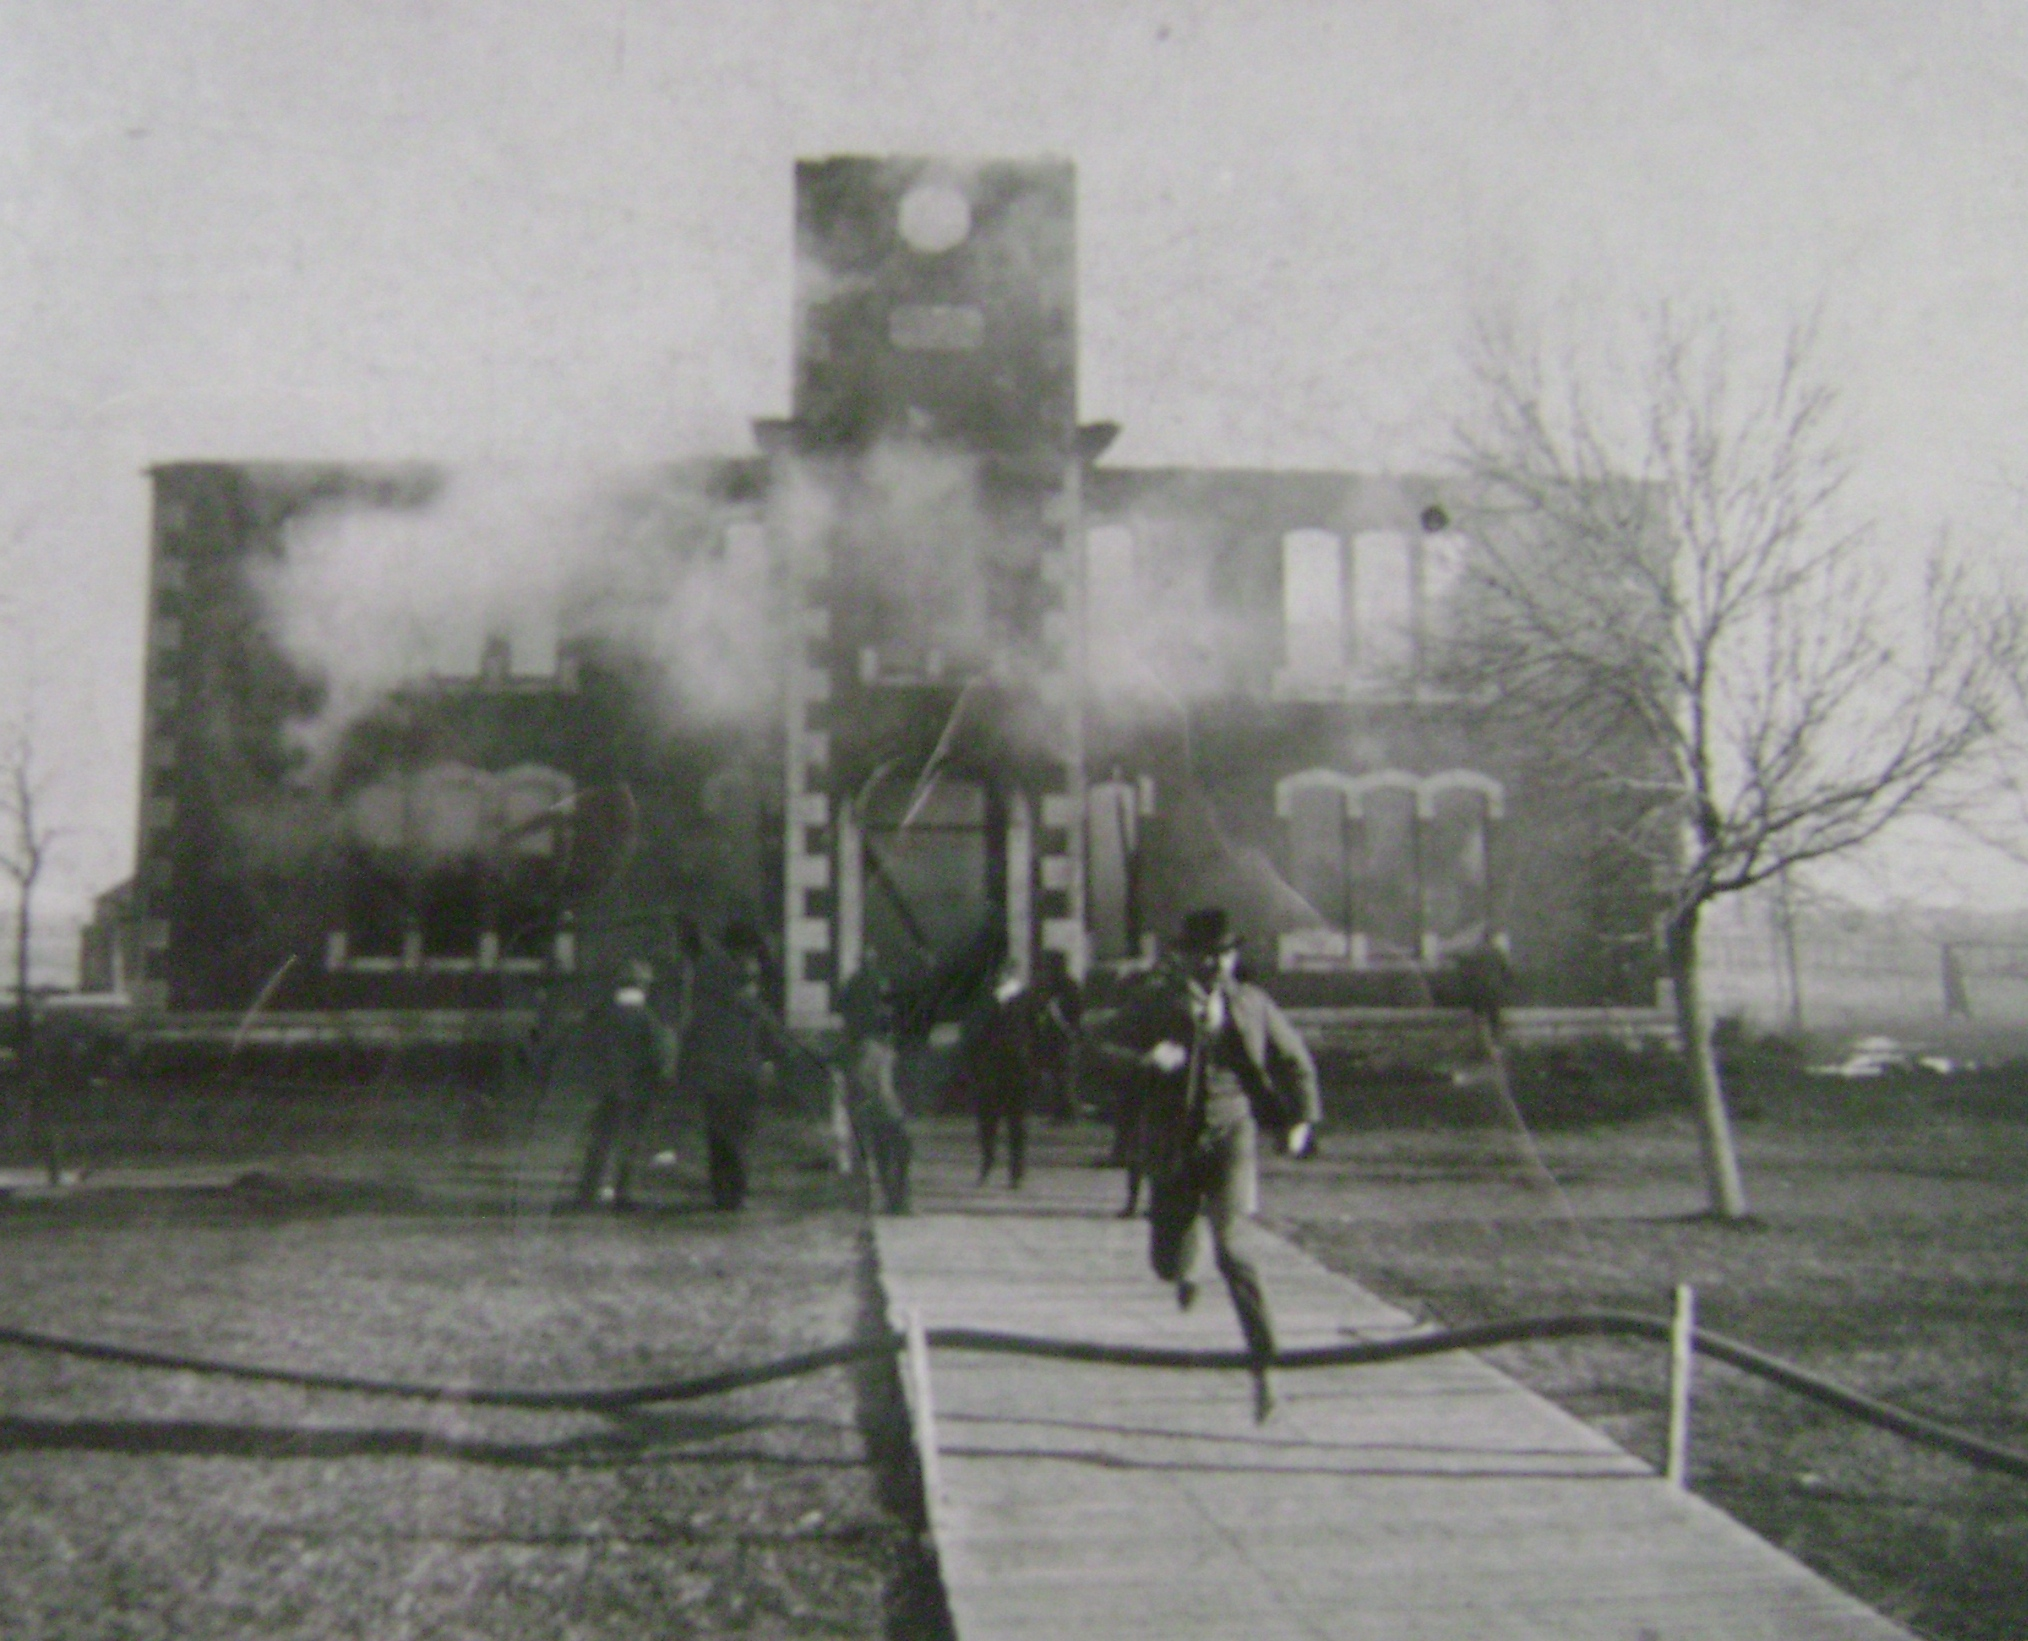 Northside Burning, 1901 (Photo courtesy of the Finney County Historical Society)